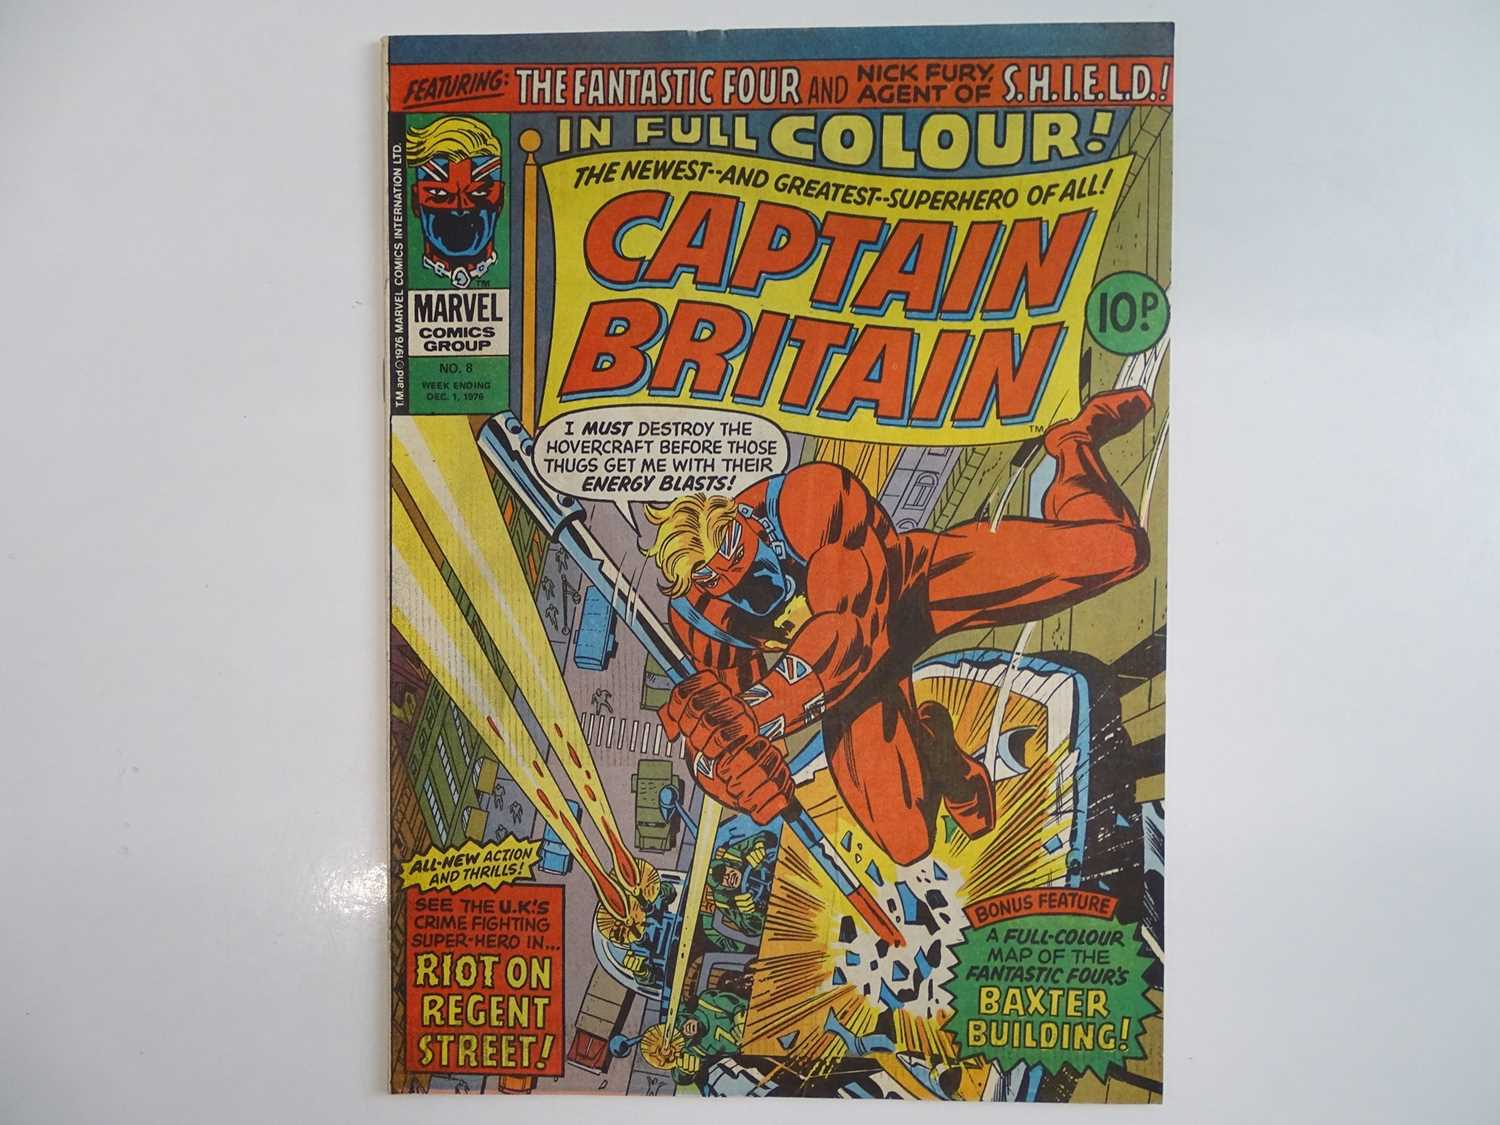 CAPTAIN BRITAIN #1 to 39 - (39 in Lot) - (1976/77 - BRITISH MARVEL) - Complete 39 issue run from # - Image 8 of 11